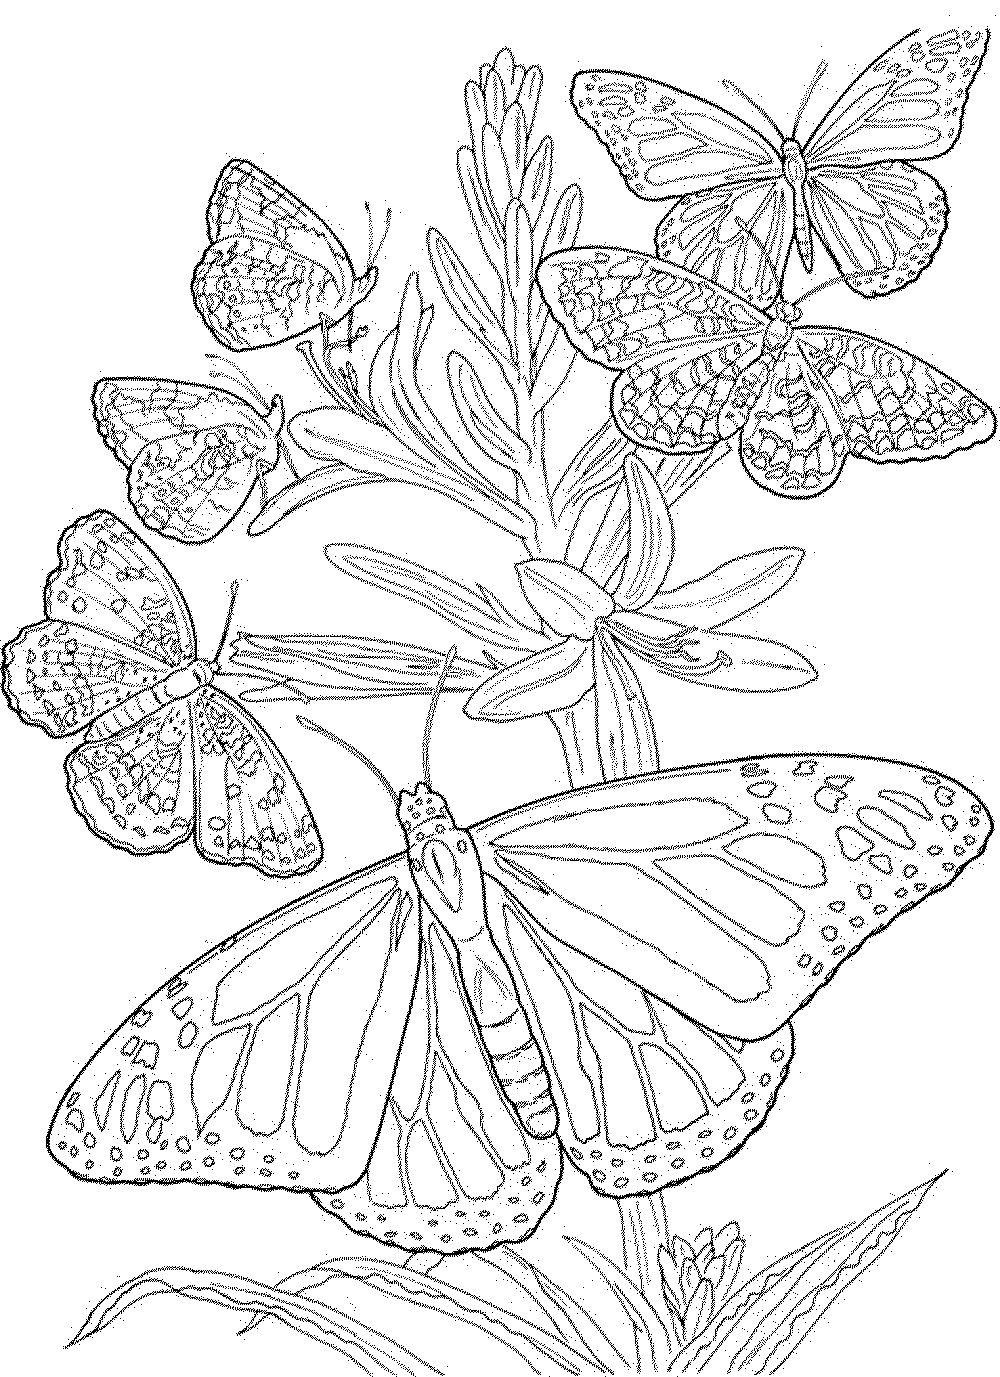 Pin On Coloring Page For Adult V2